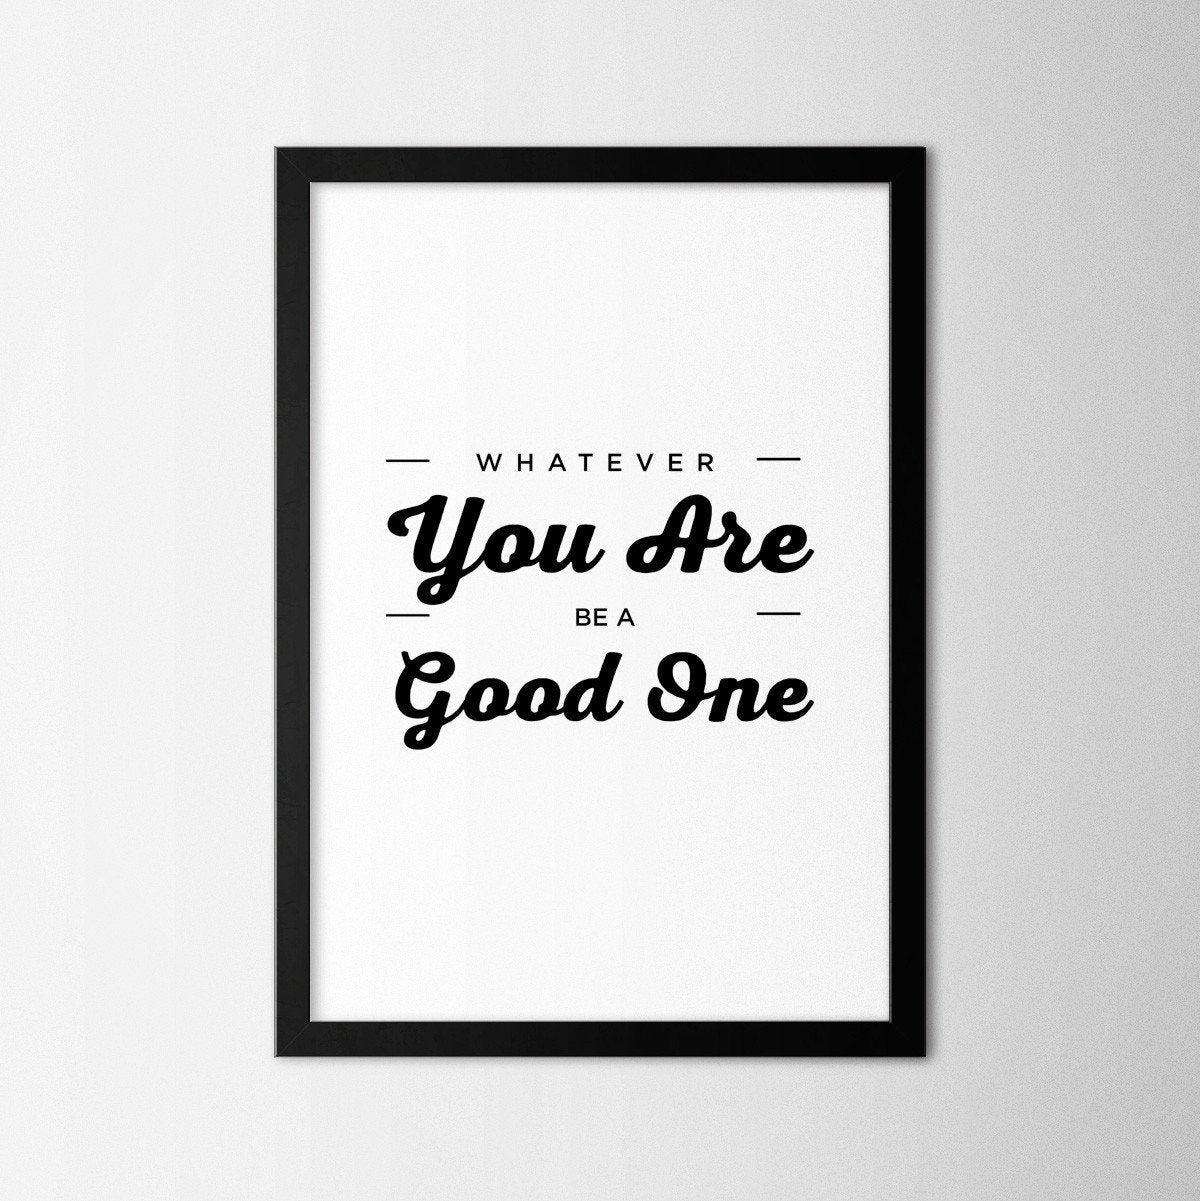 You are Good - Northshire Art Prints - Poster - Dekorasyon - Ev Dekorasyonu - Dekorasyon Fikirleri - Hediyelik